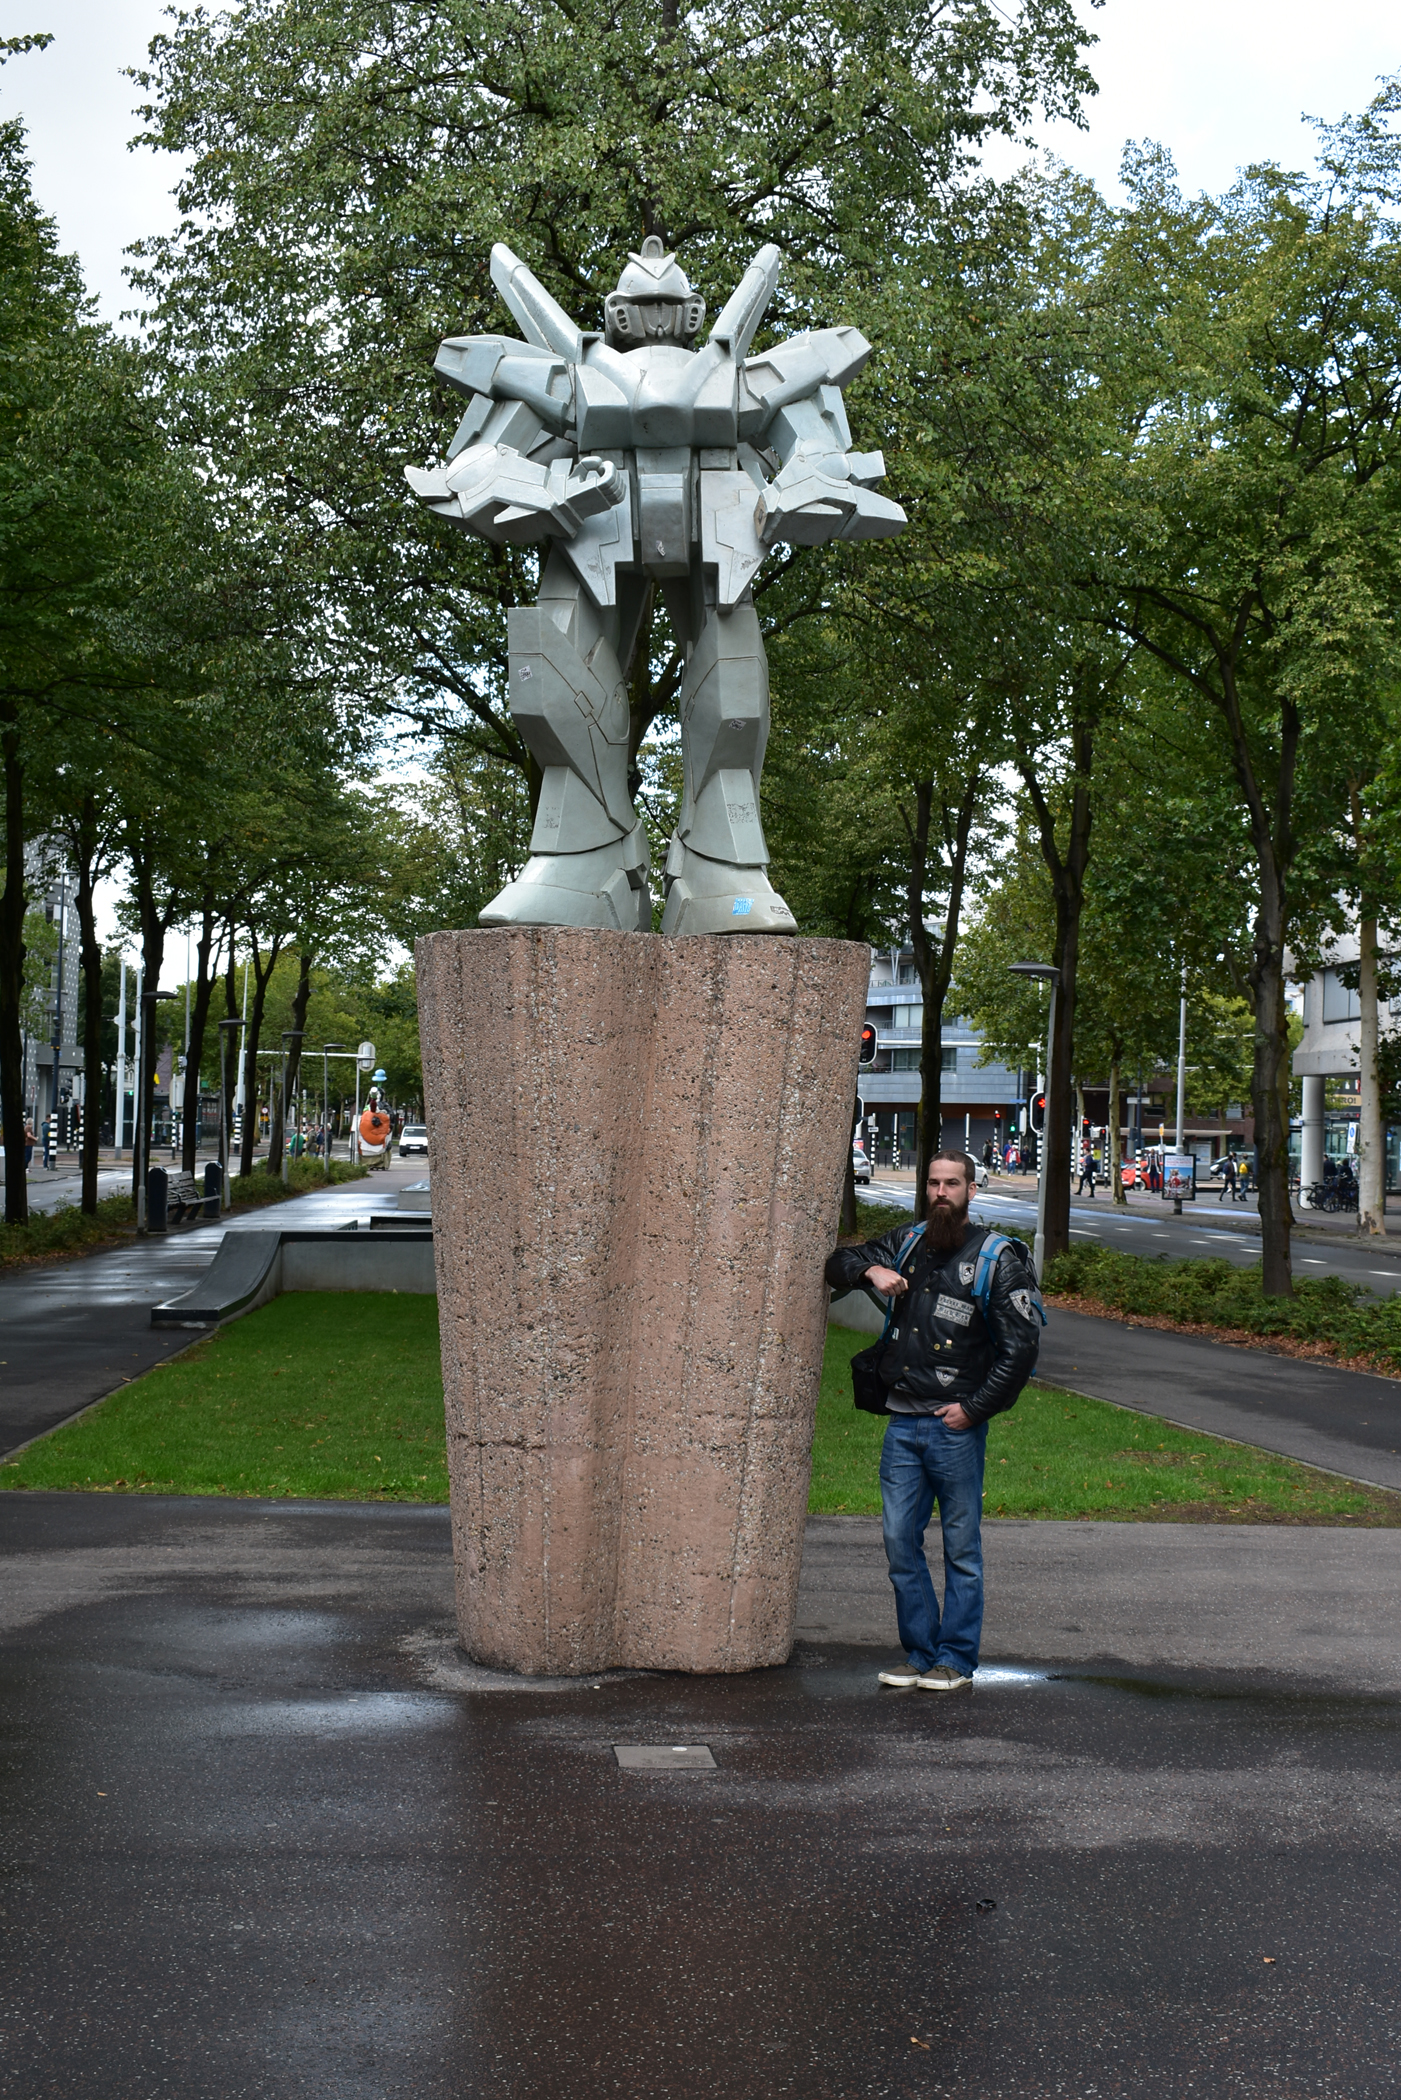 Transformer statue in the middle of Rotterdam.